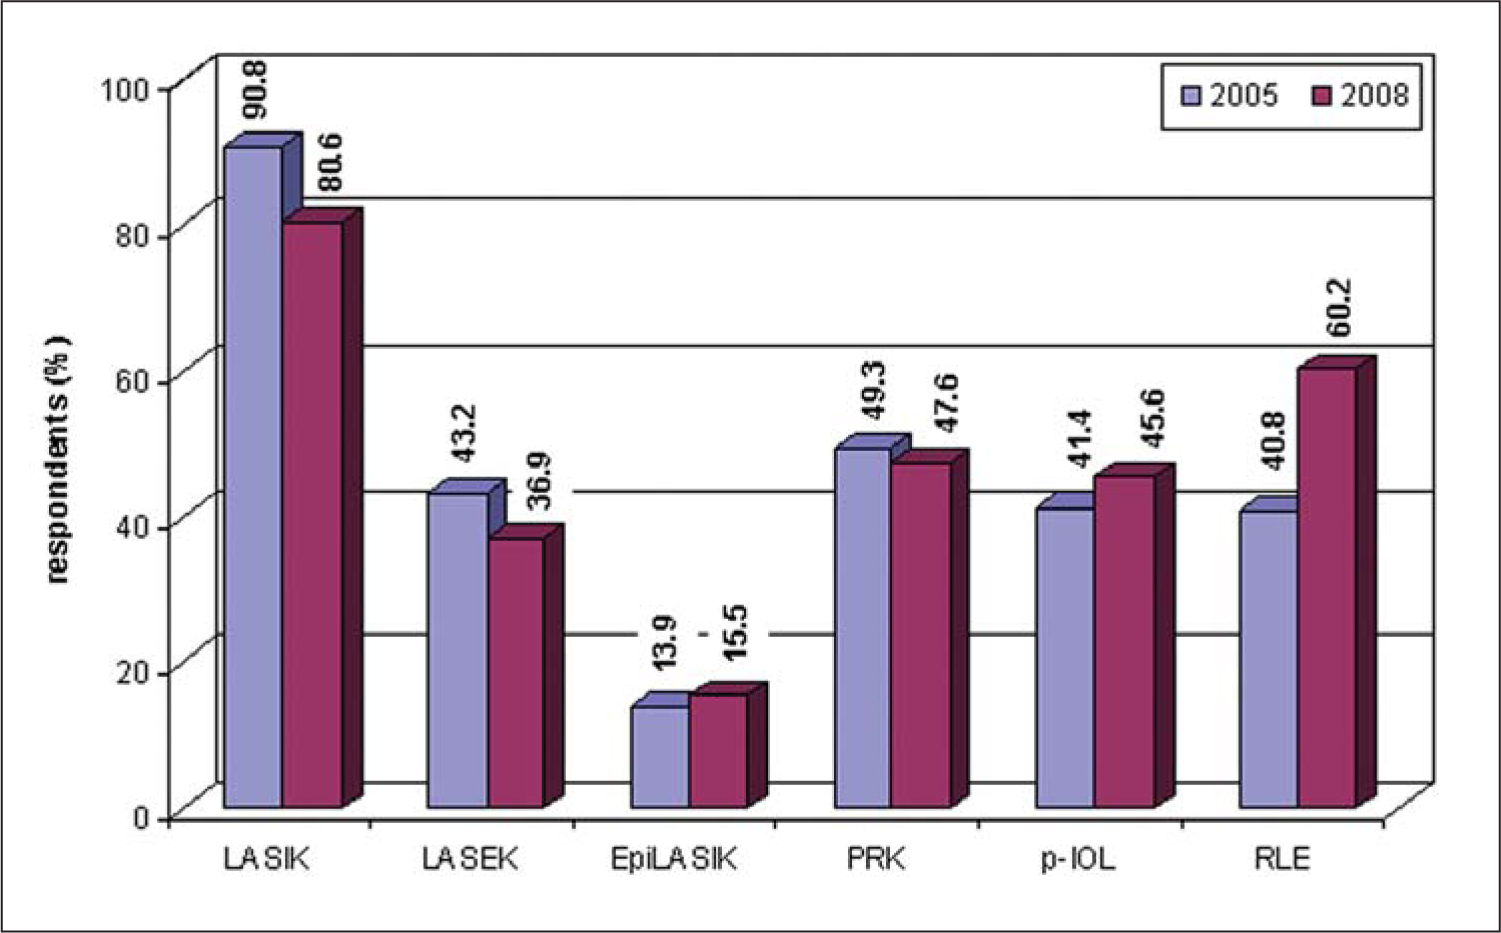 Changes in Refractive Surgical Practice Styles in Germany Between 2005 and 2008. LASEK = Laser-Assisted Subepithelial Keratectomy, EpiLASIK = Epithelial Laser in Situ Keratomileusis, PRK = Photorefractive Keratectomy, p-IOL = Phakic Intraocular Lens, RLE = Refractive Lens Exchange